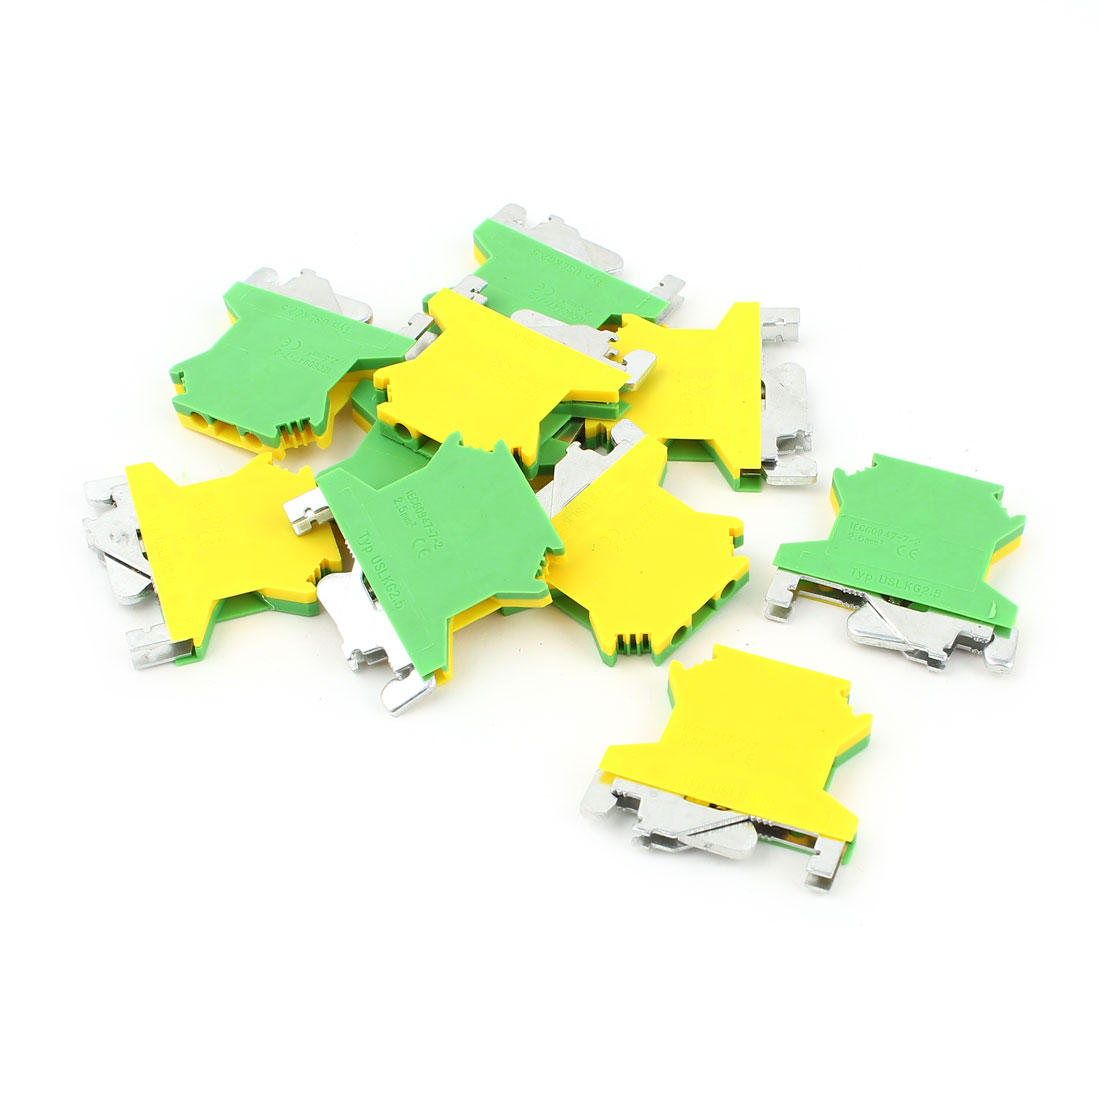 10 x USLKG2.5 0.2-4mm2 Wire Rail Mount Grounding Terminal Block Yellow Green